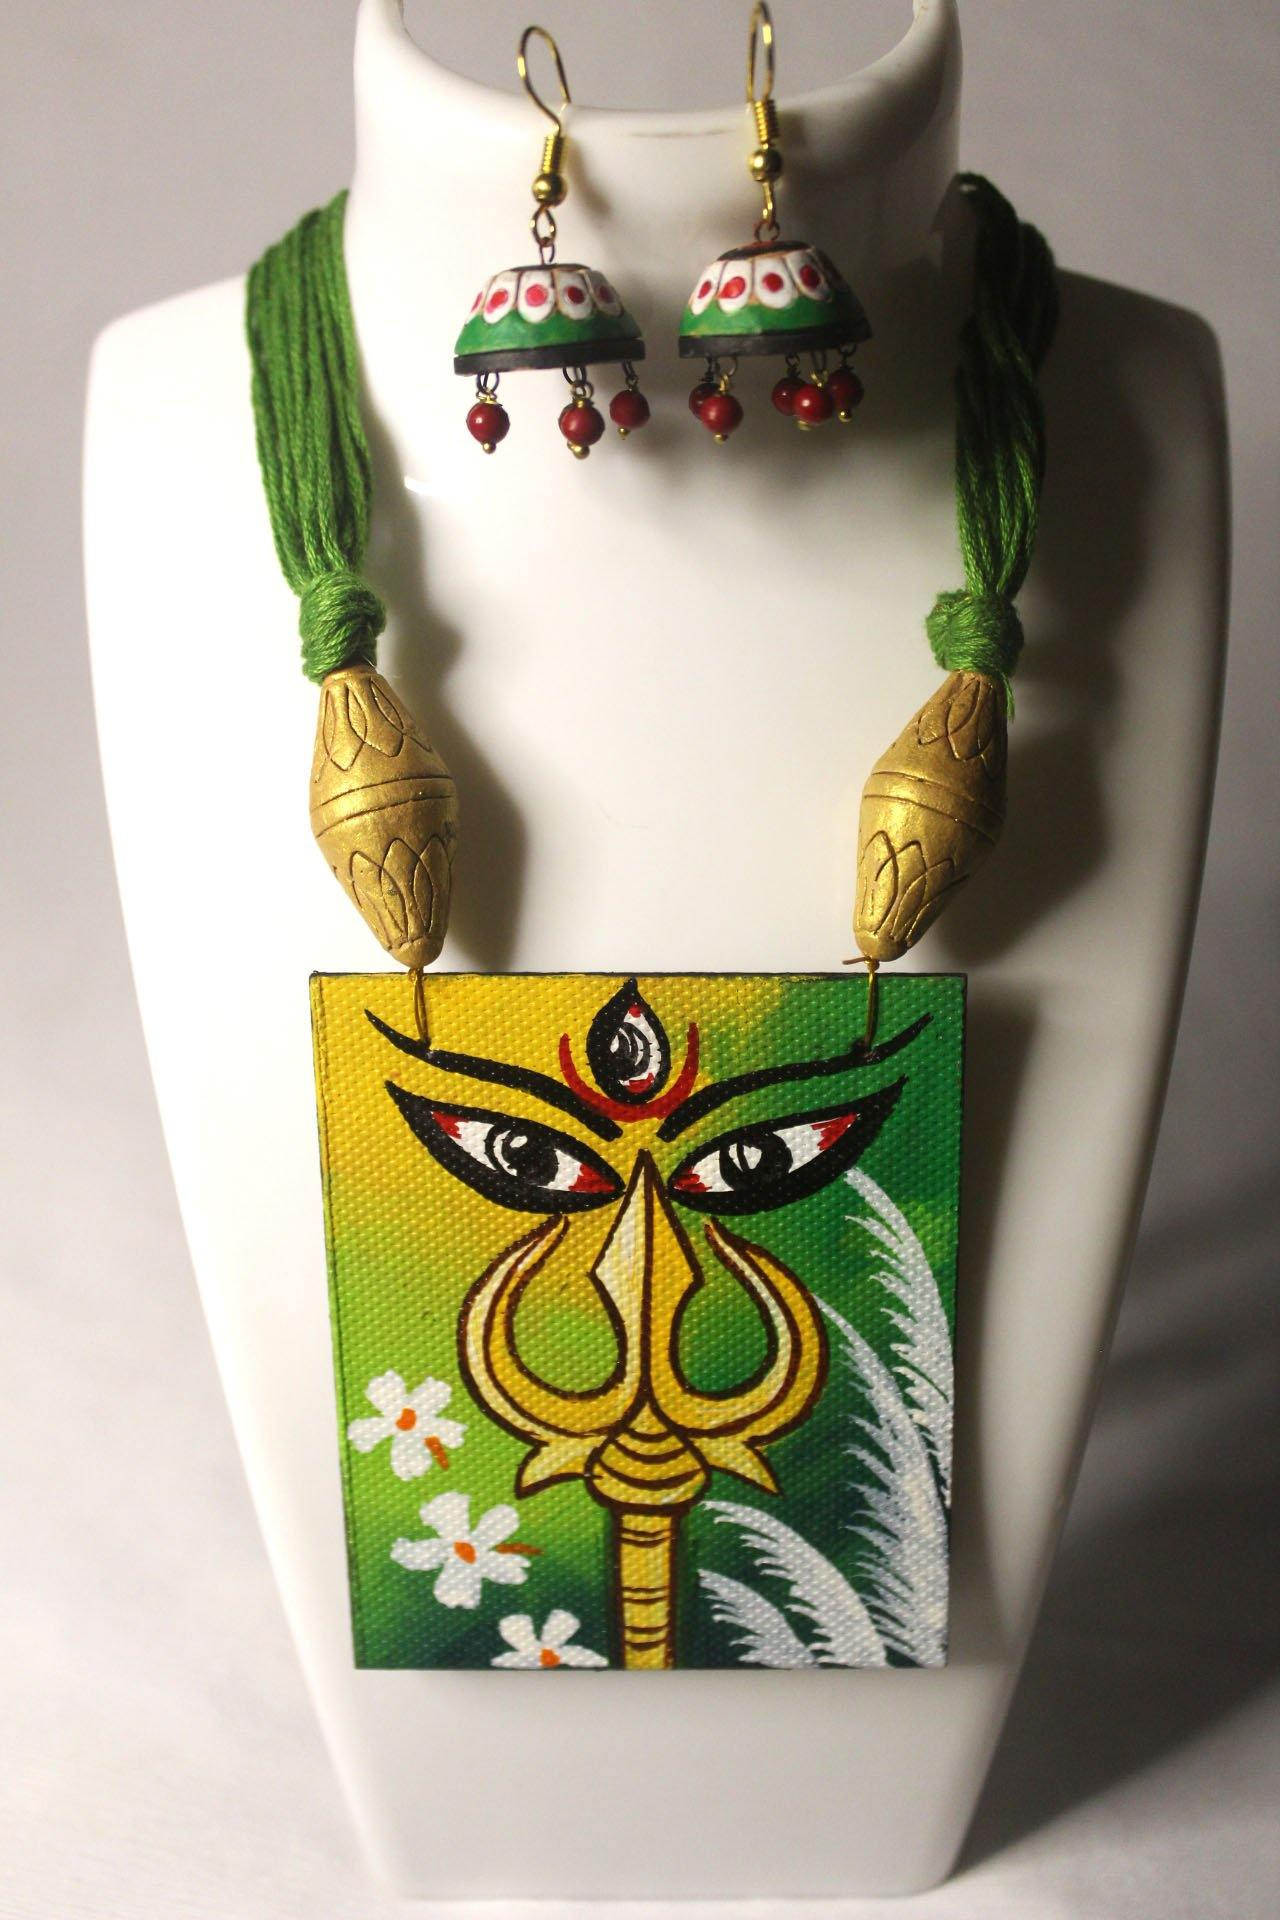 EthniCache Hand Painted Jewelry Celestial Hand Painted Terracotta and Wood Jewelry Set